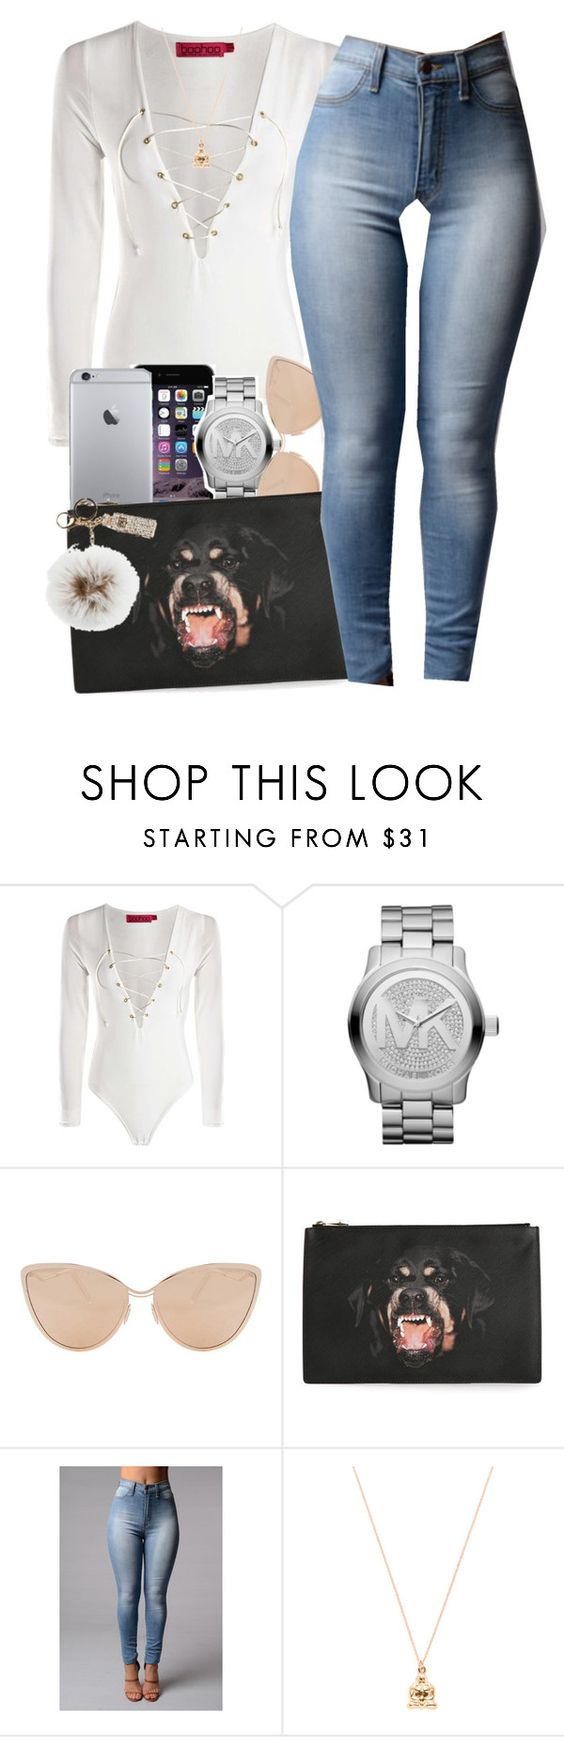 """"""".............."""" by fxrrxh ❤ liked on Polyvore featuring Michael Kors, Cutler and Gross, Givenchy, Good Charma and Overland Sheepskin Co."""